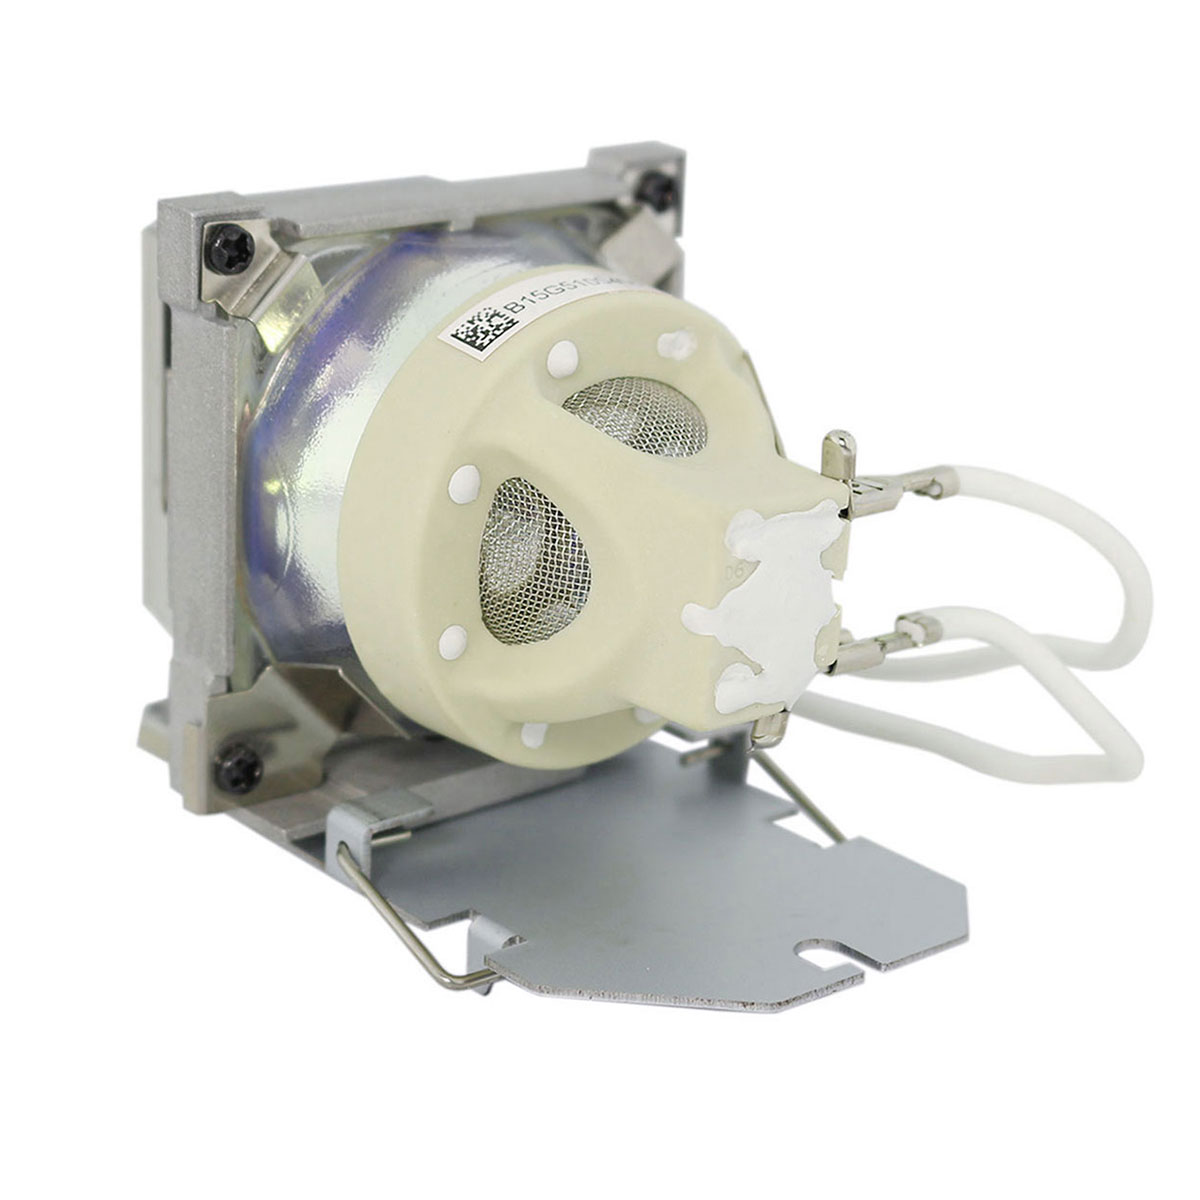 Original Philips Projector Lamp Replacement with Housing for BenQ TP4940 - image 3 of 5